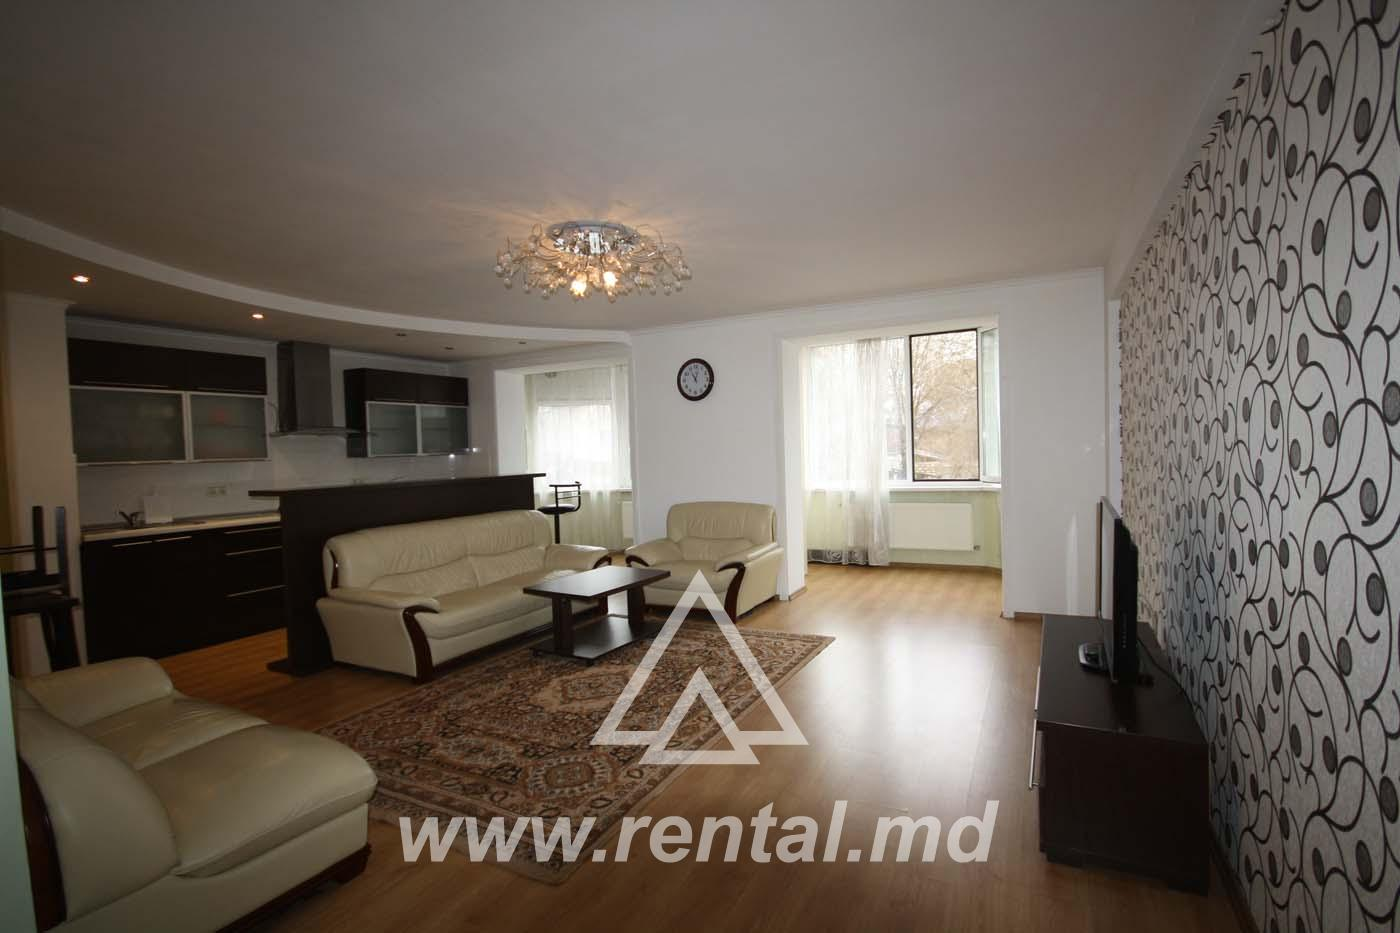 4 rooms apartment for rent near the city center